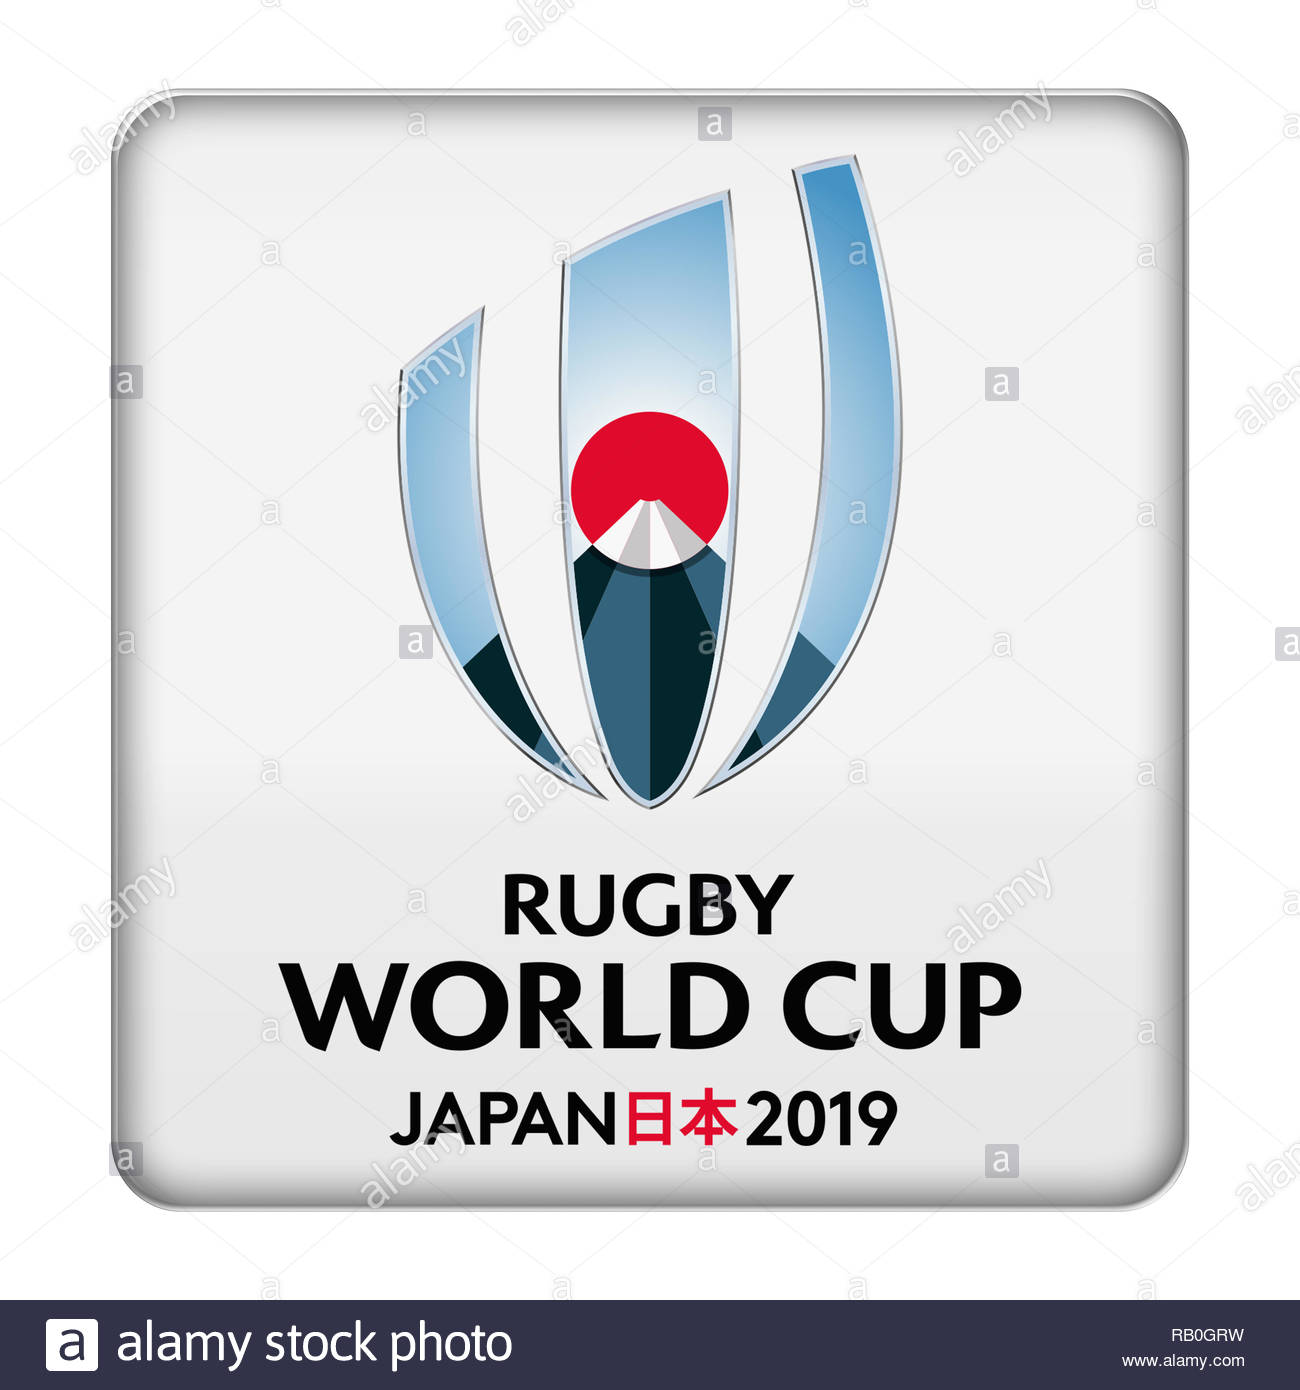 2019 Rugby World Cup logo - Stock Image